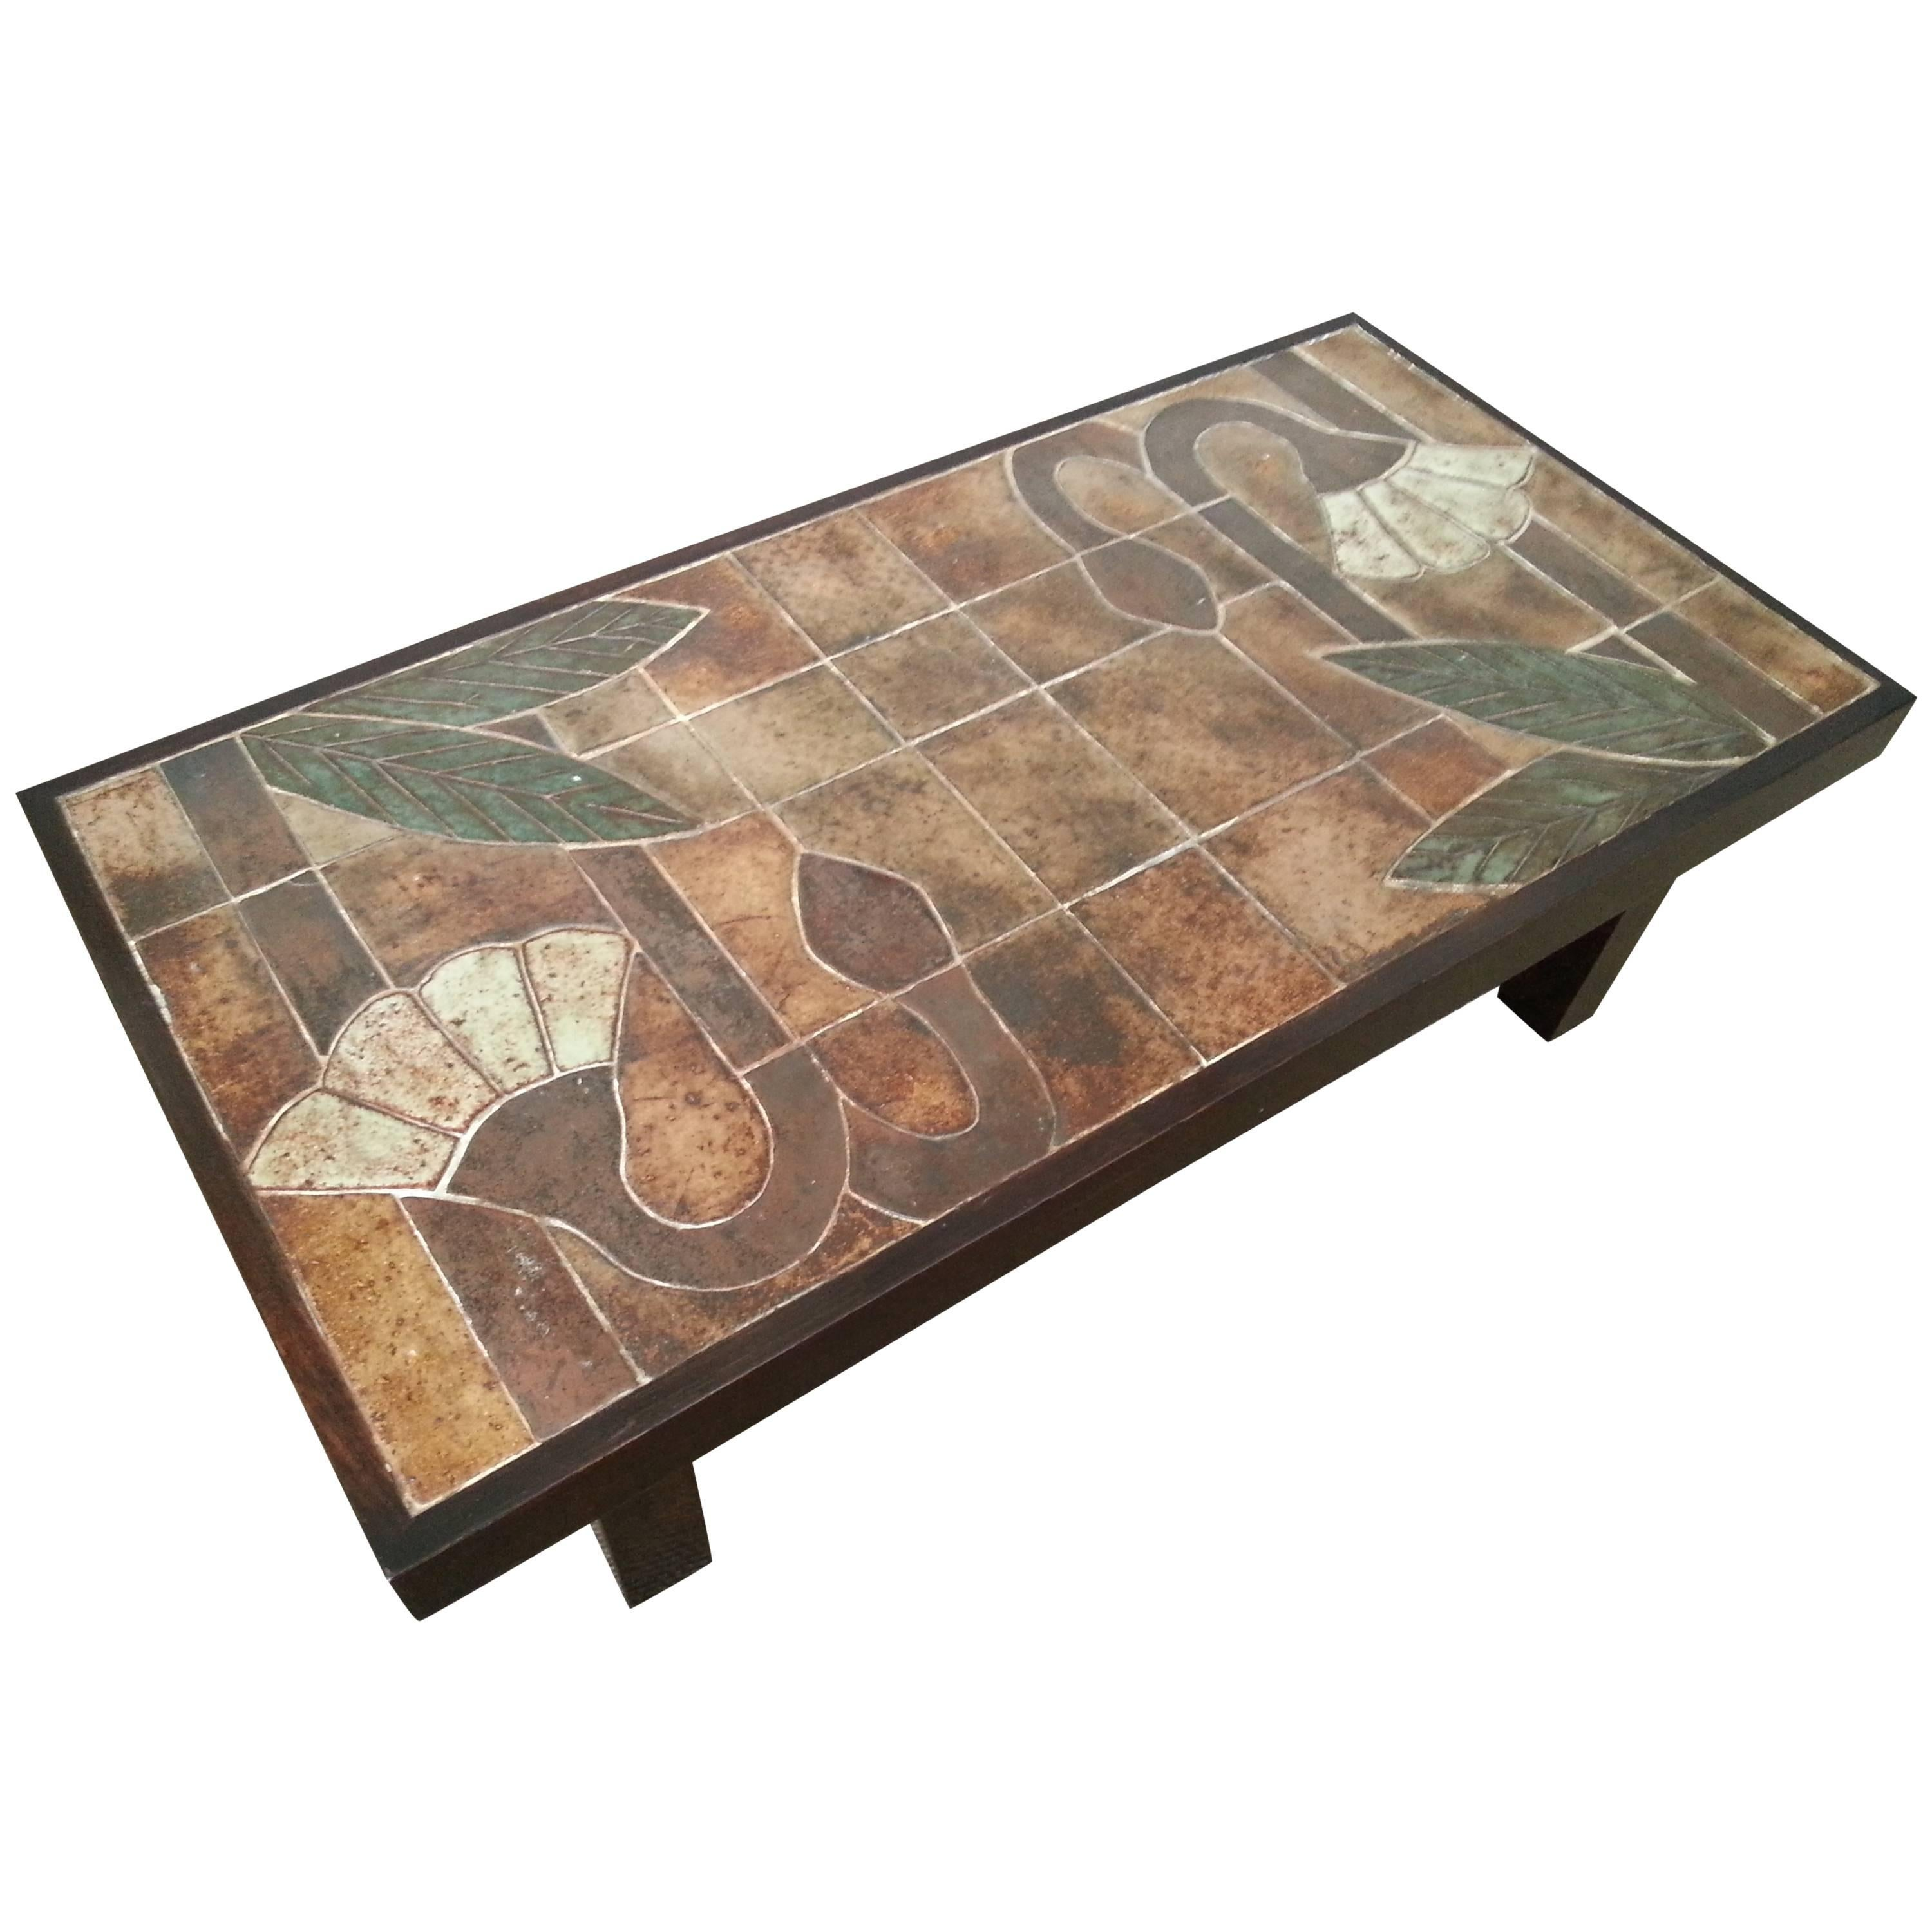 1960s Ceramic Coffee Table, Vallauris, France